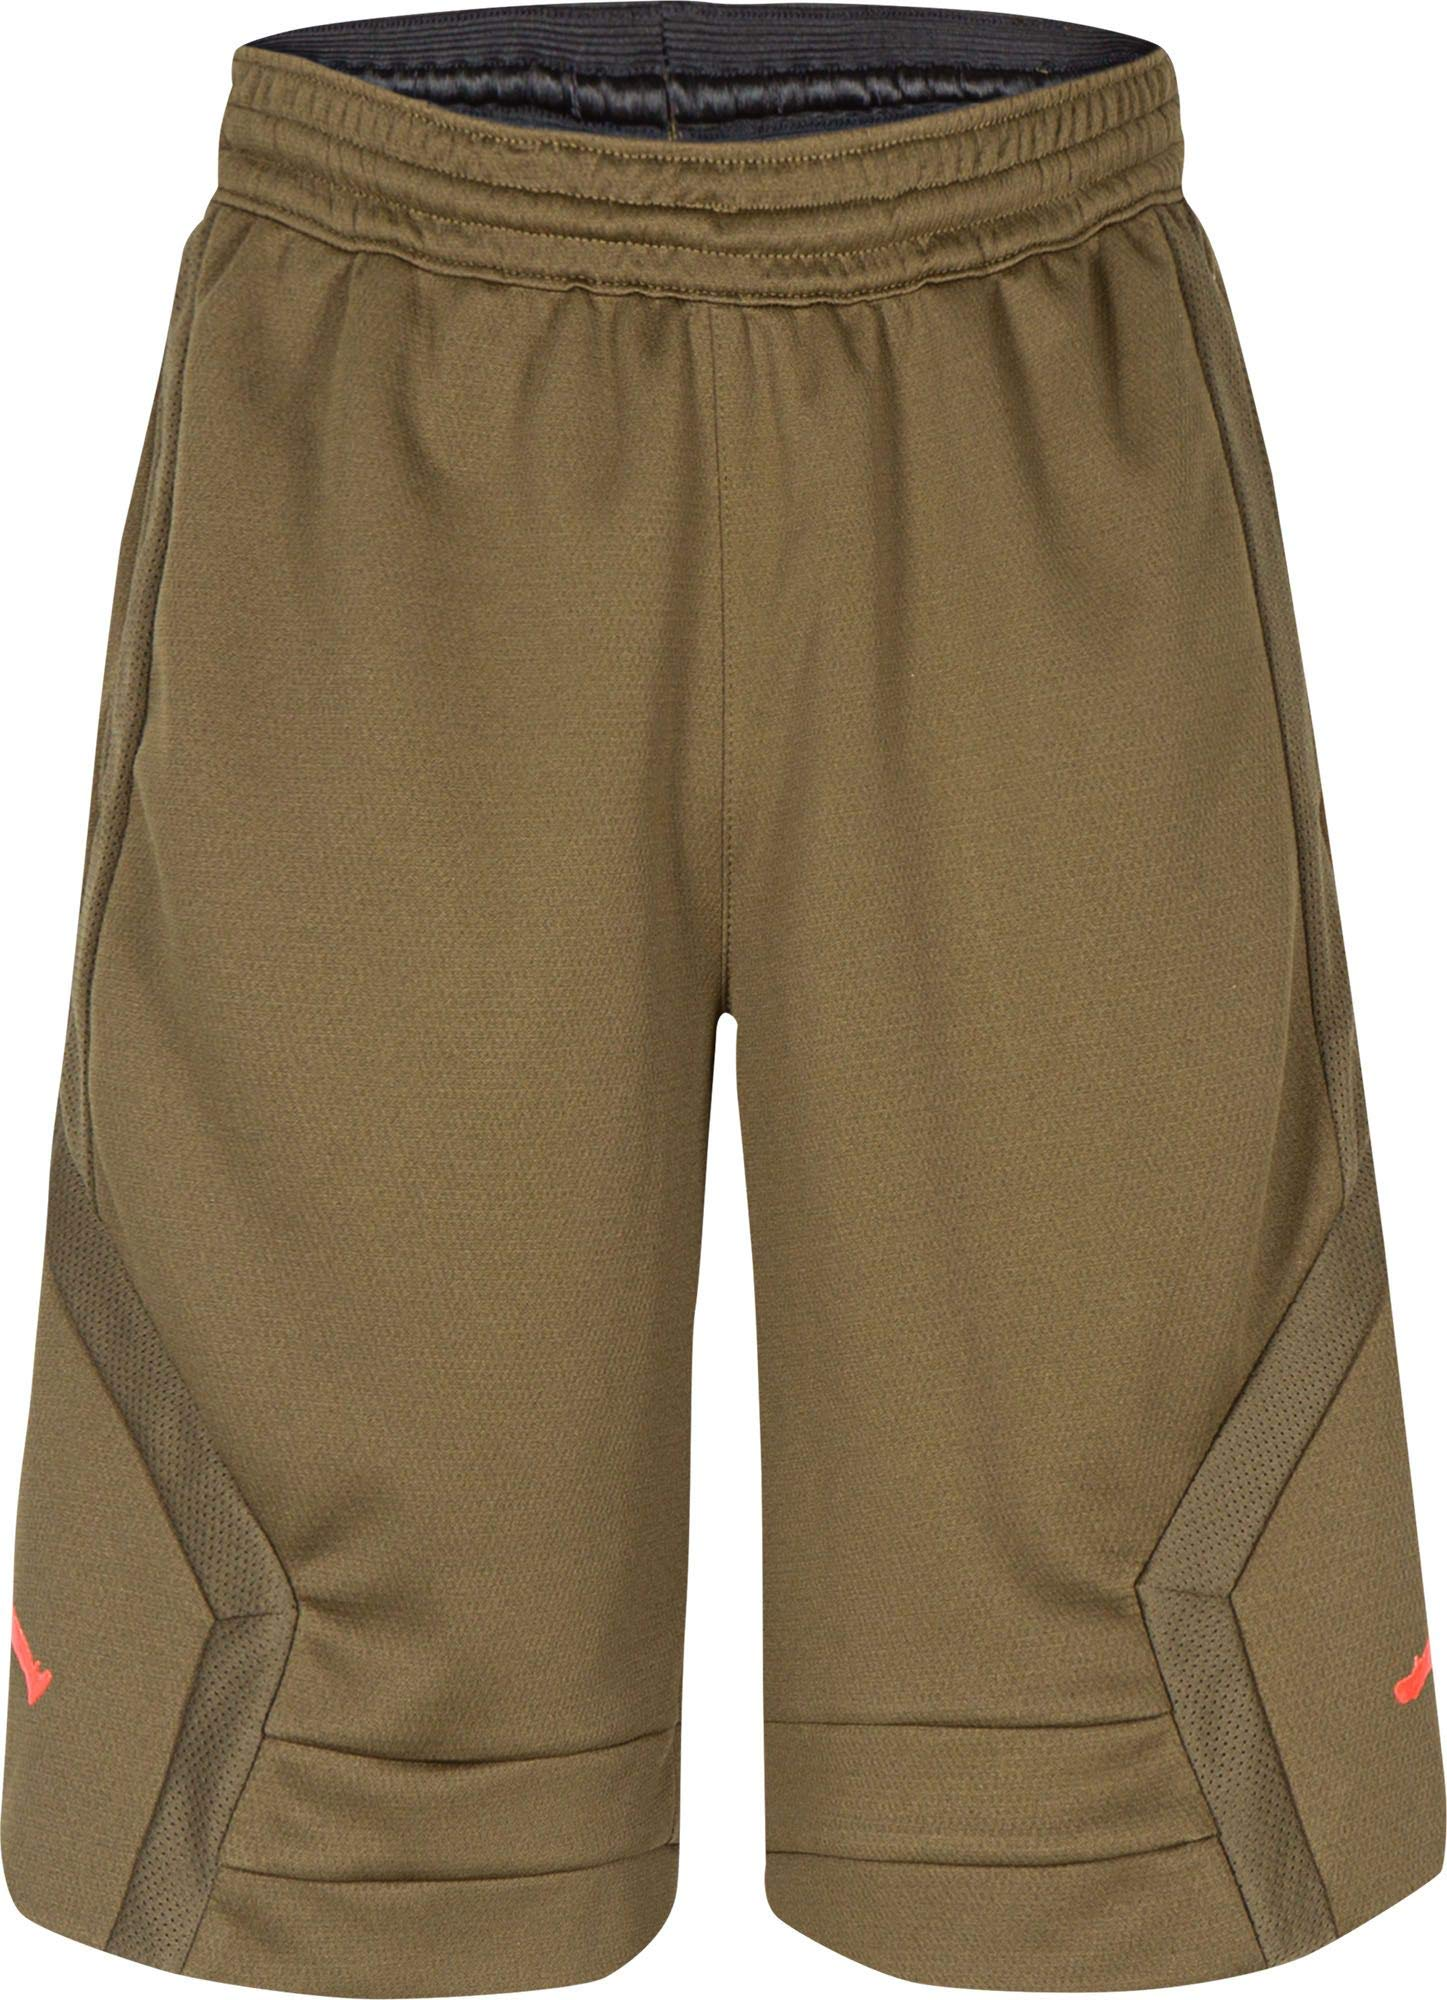 Jordan Boys' Dry Rise Shorts (S, Olive Canvas)